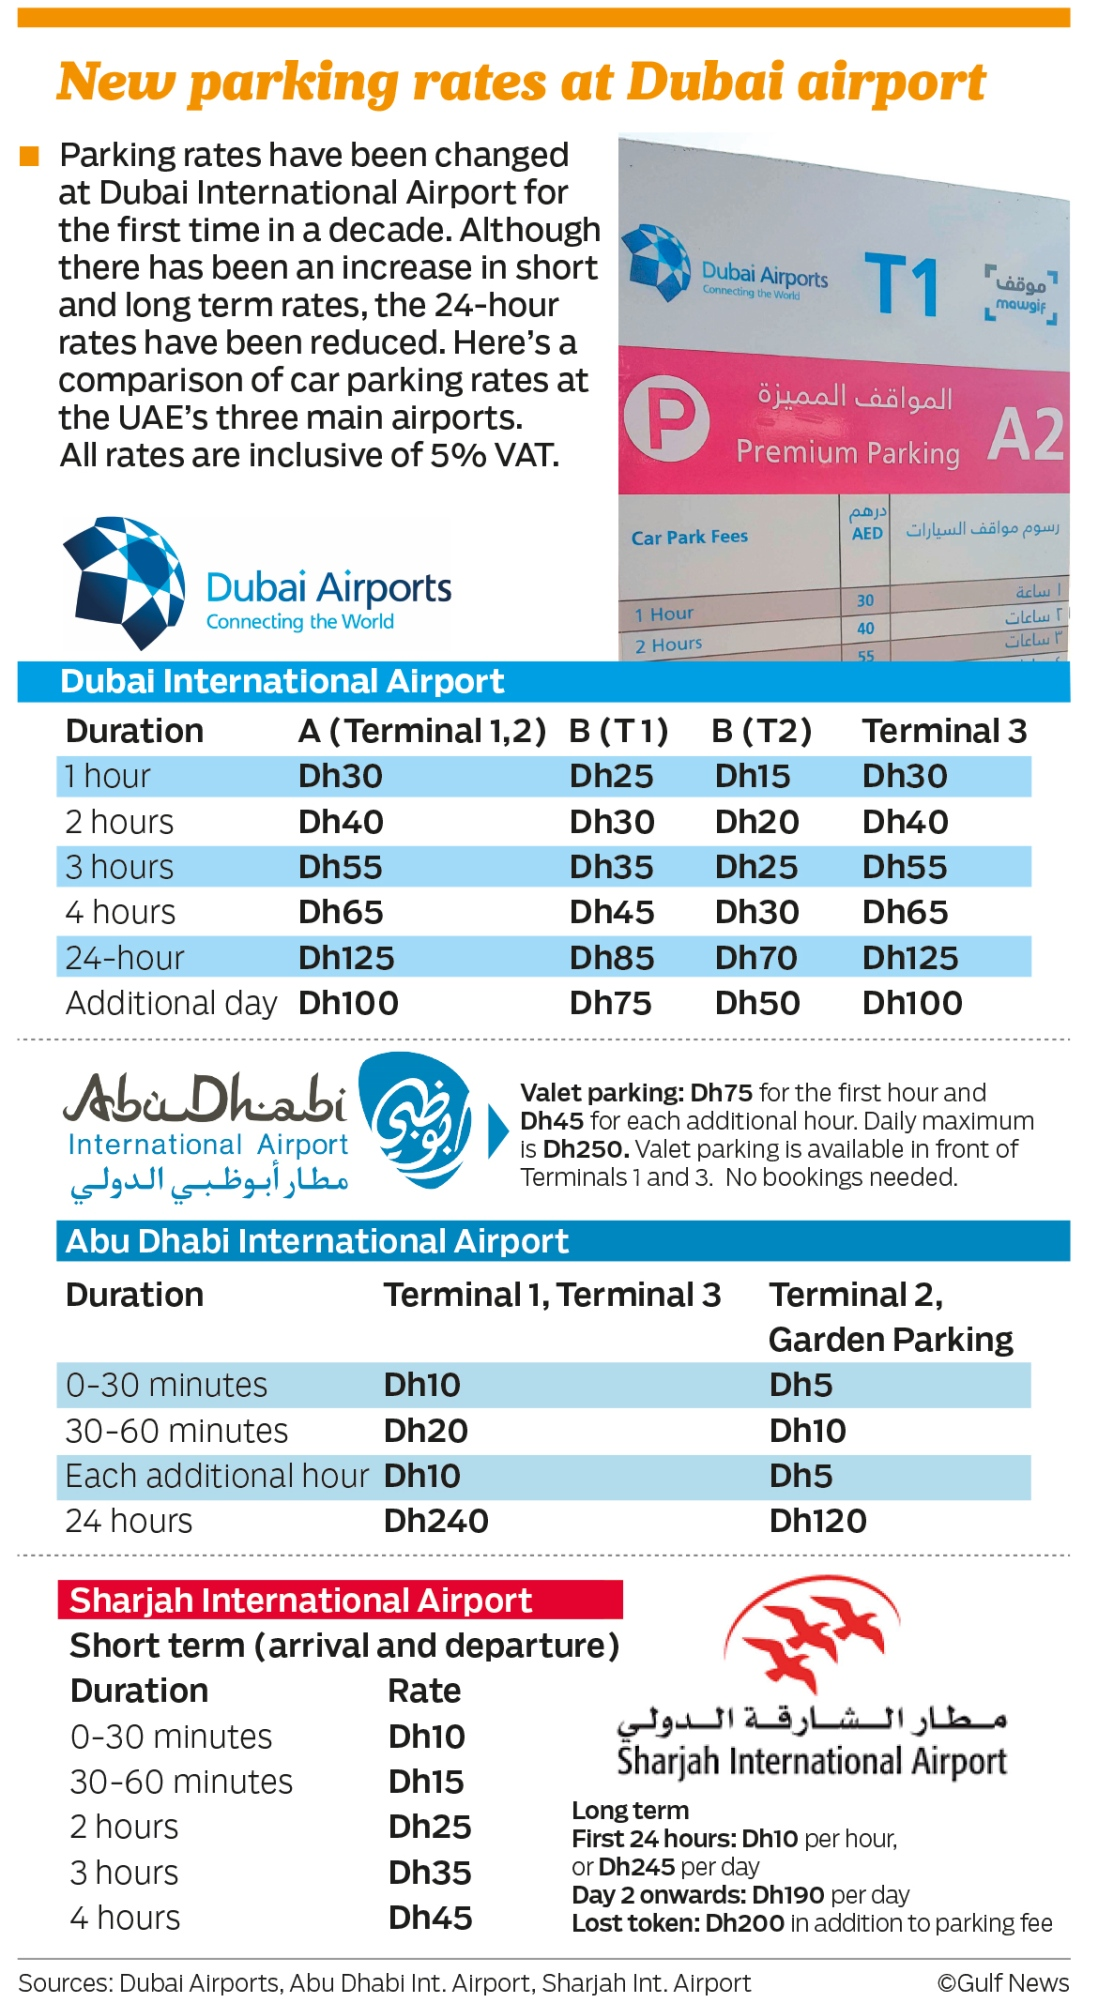 Dubai airport increases parking rates | Transport – Gulf News